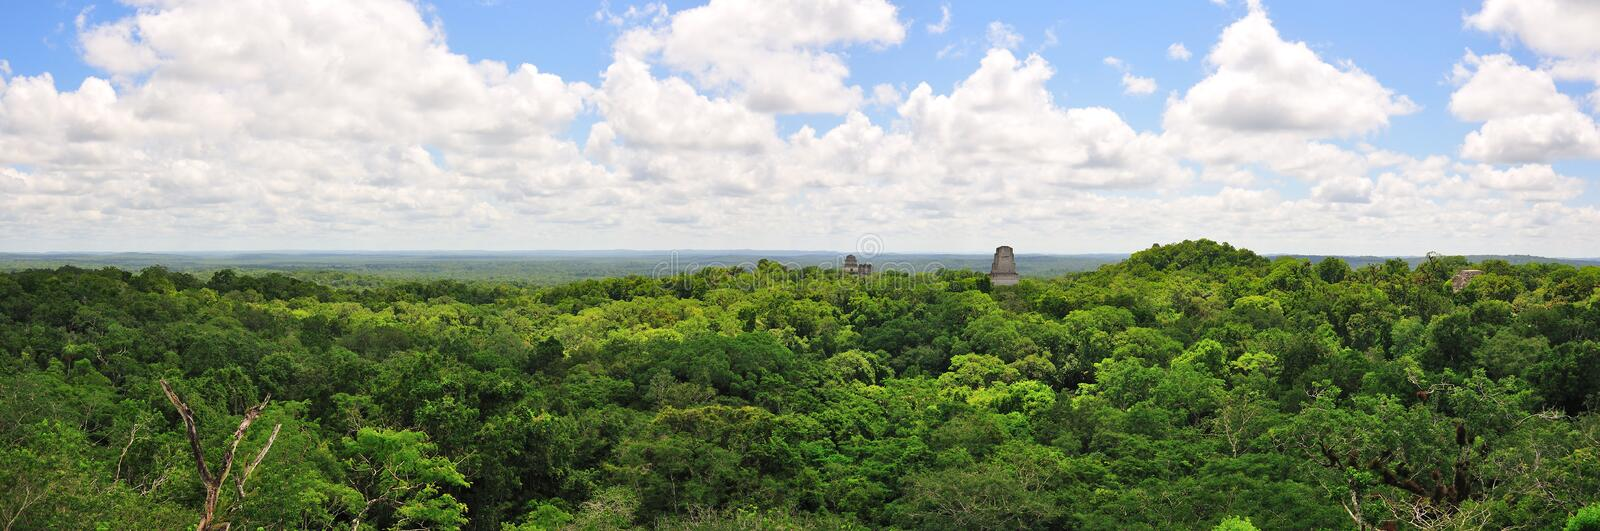 tikal guatemala rainforest royaltyfria bilder